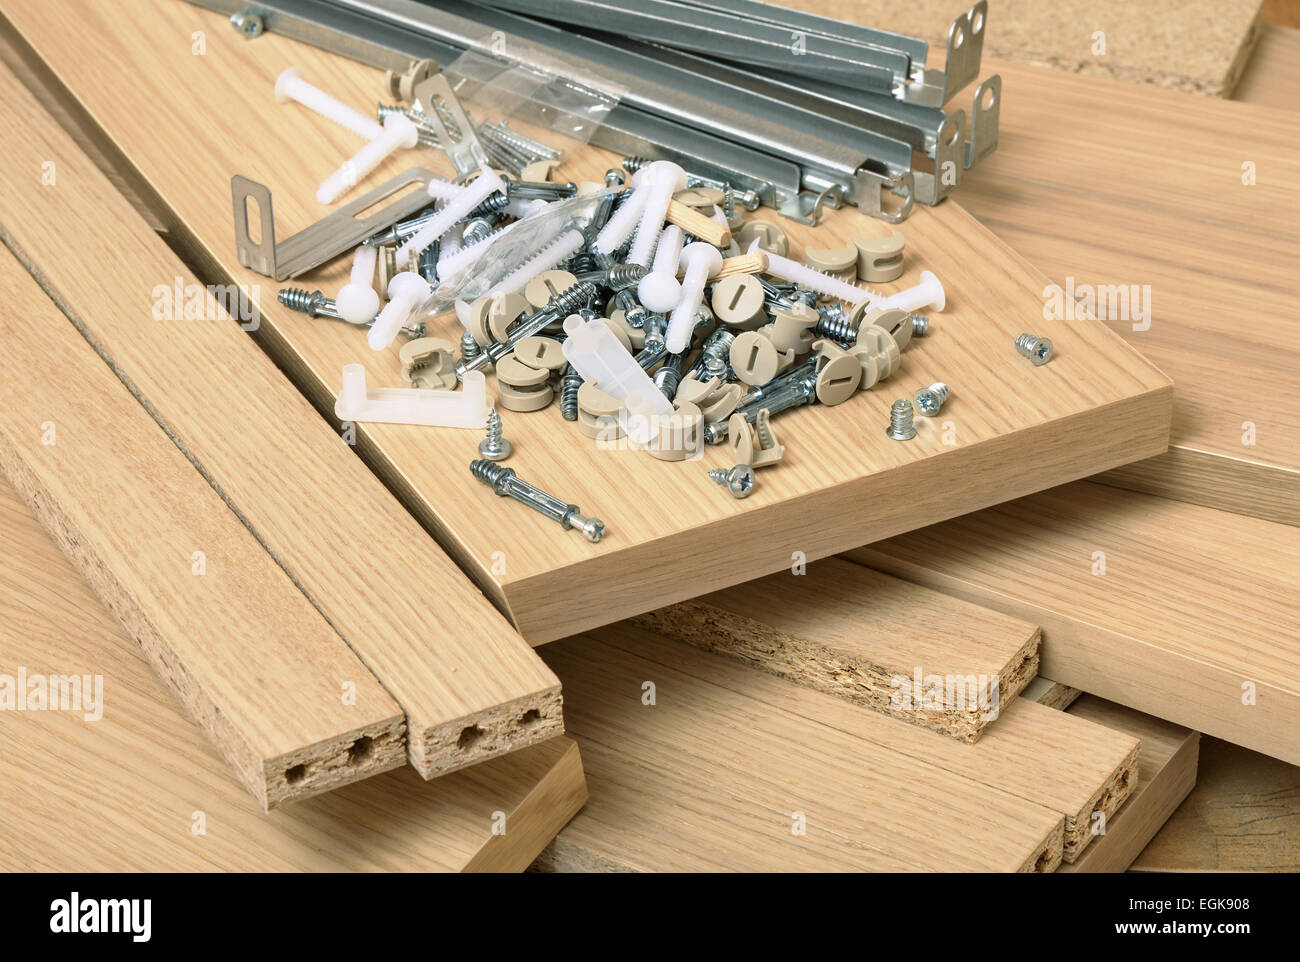 Close up of assembly furniture kit - Stock Image